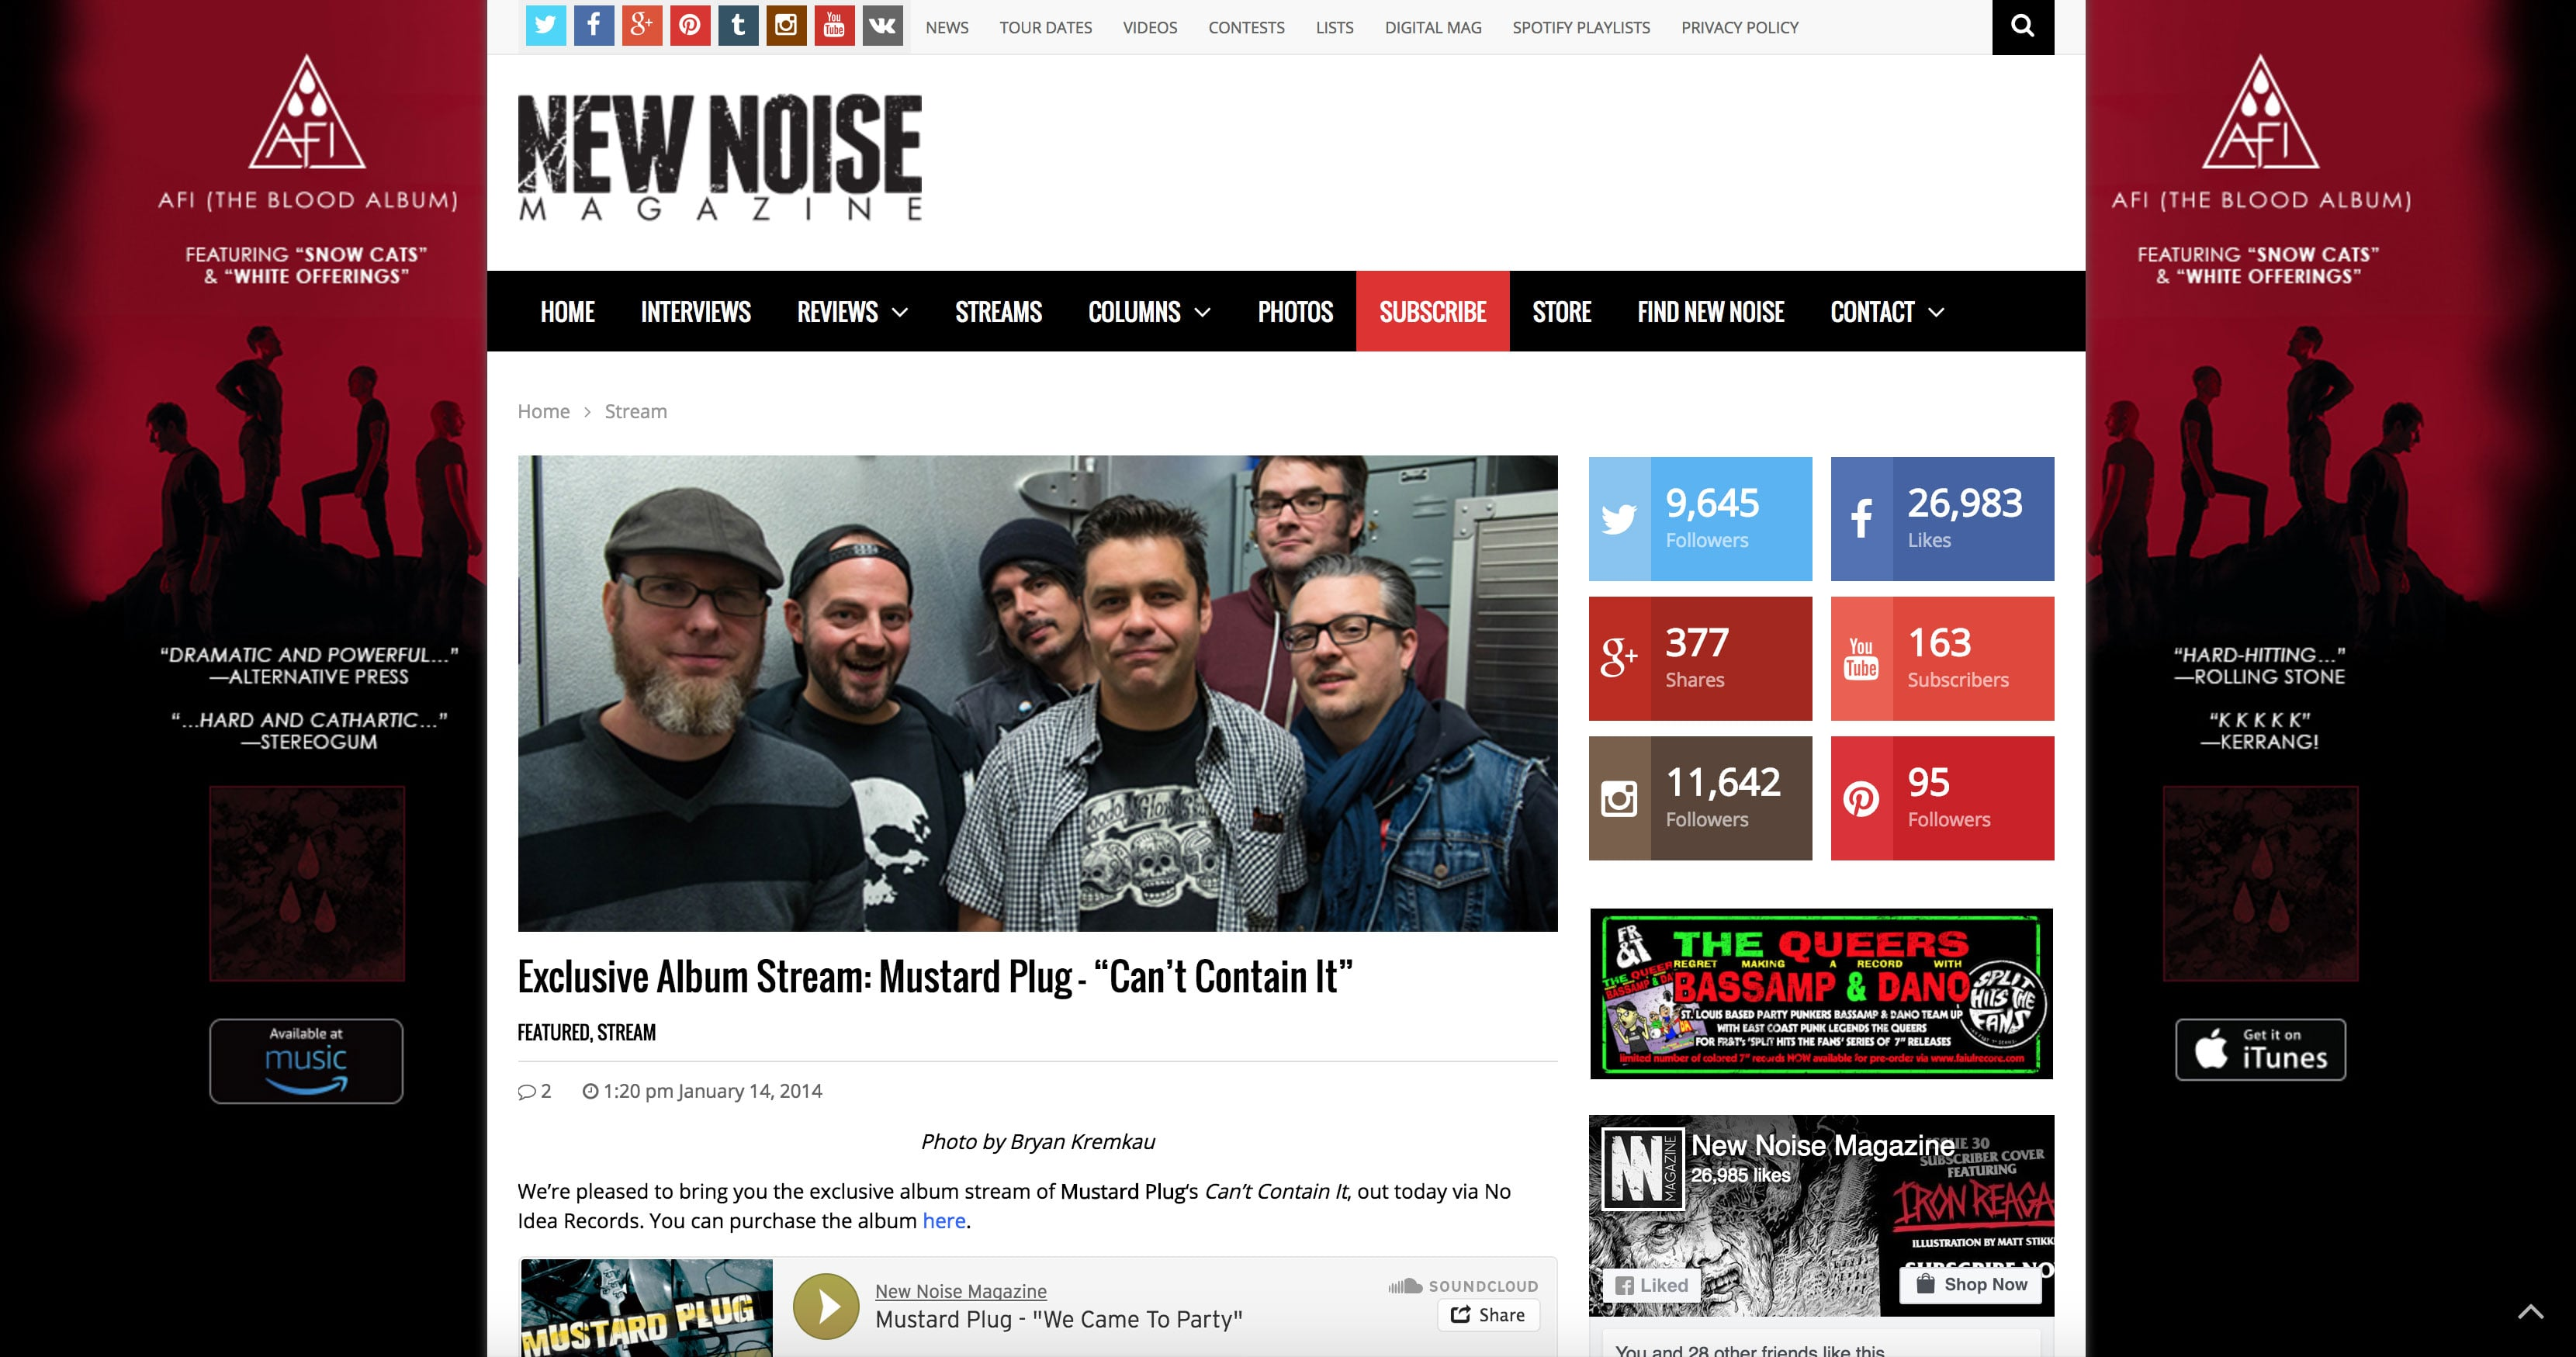 Tearsheets: Mustard Plug (New Noise Magazine)